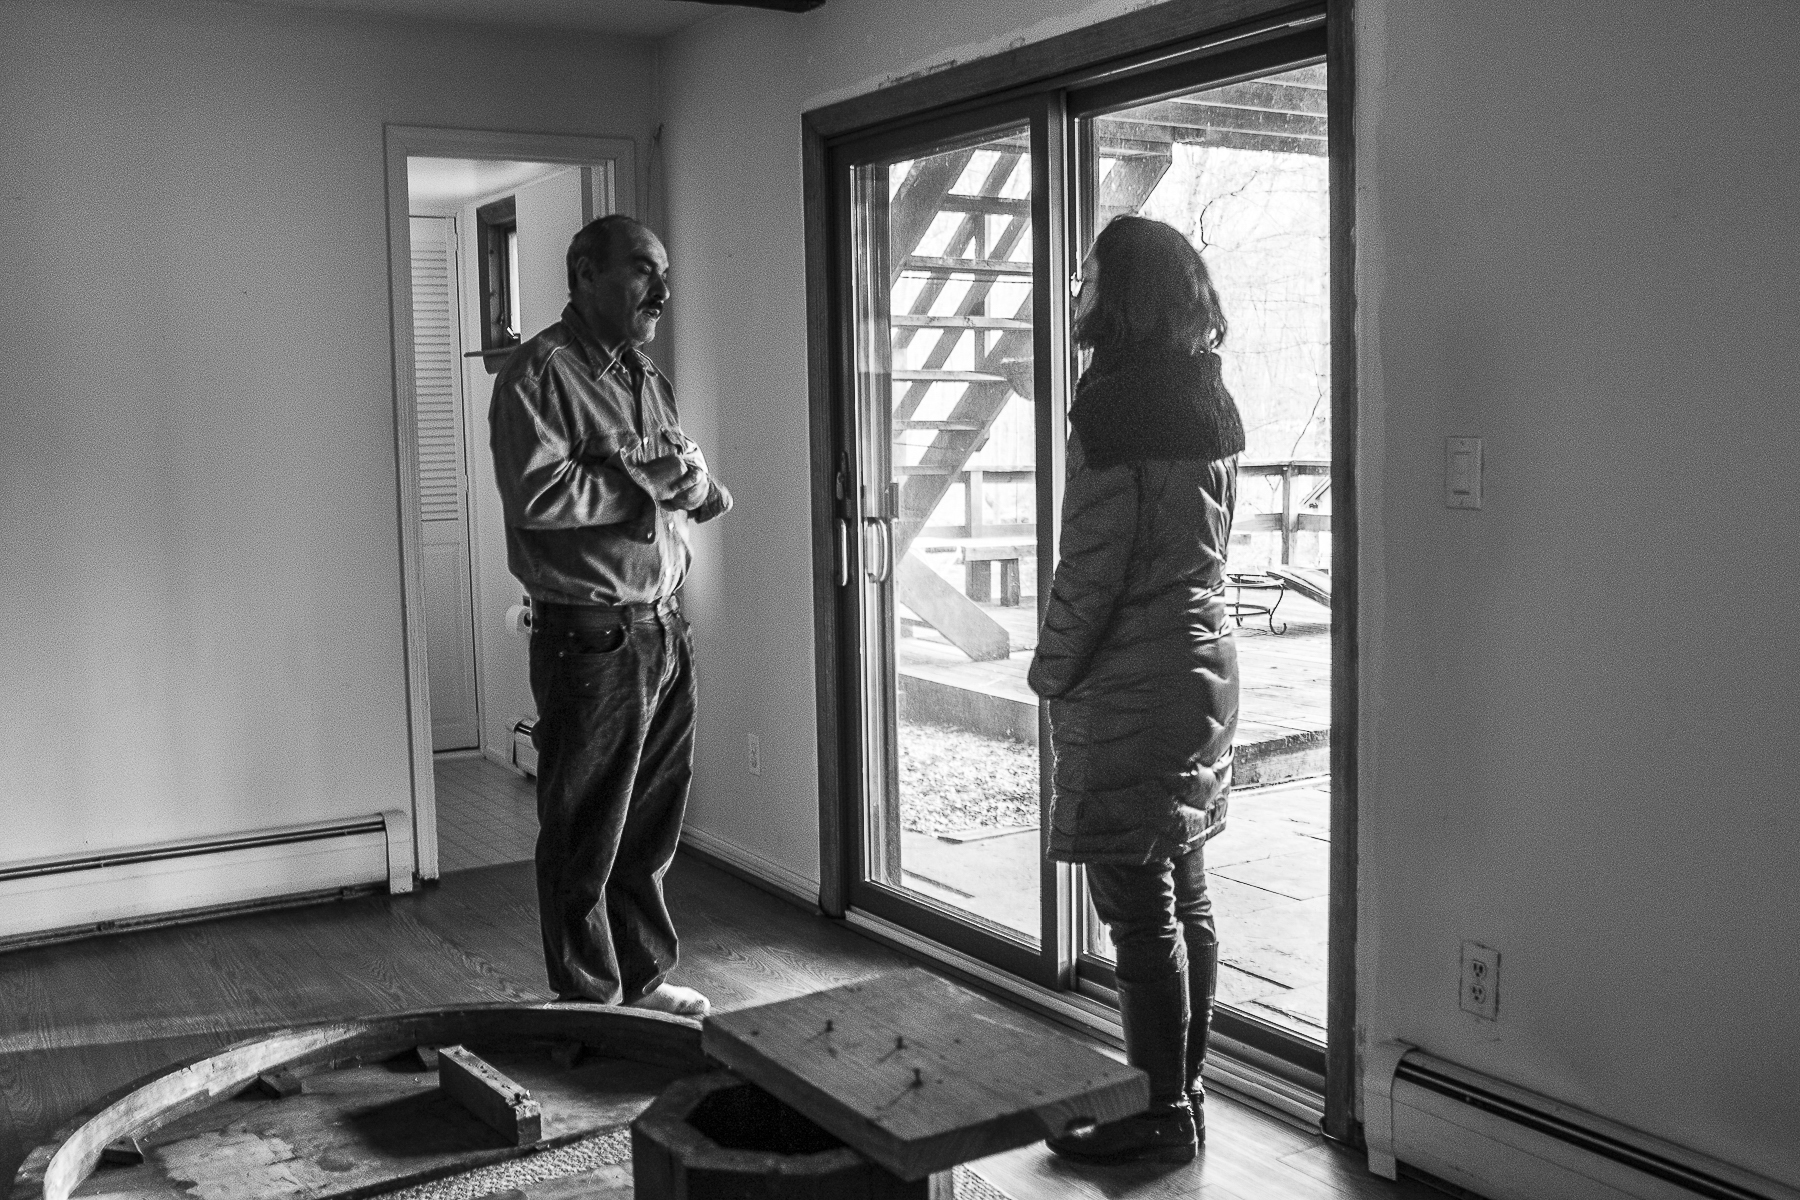 Wasek Safieh, from Damascus, Syria has lived in America since the 90s. He works as a real estate developer. Here, Wasek shows Aisha, also a real-estate developer, his newest purchase.